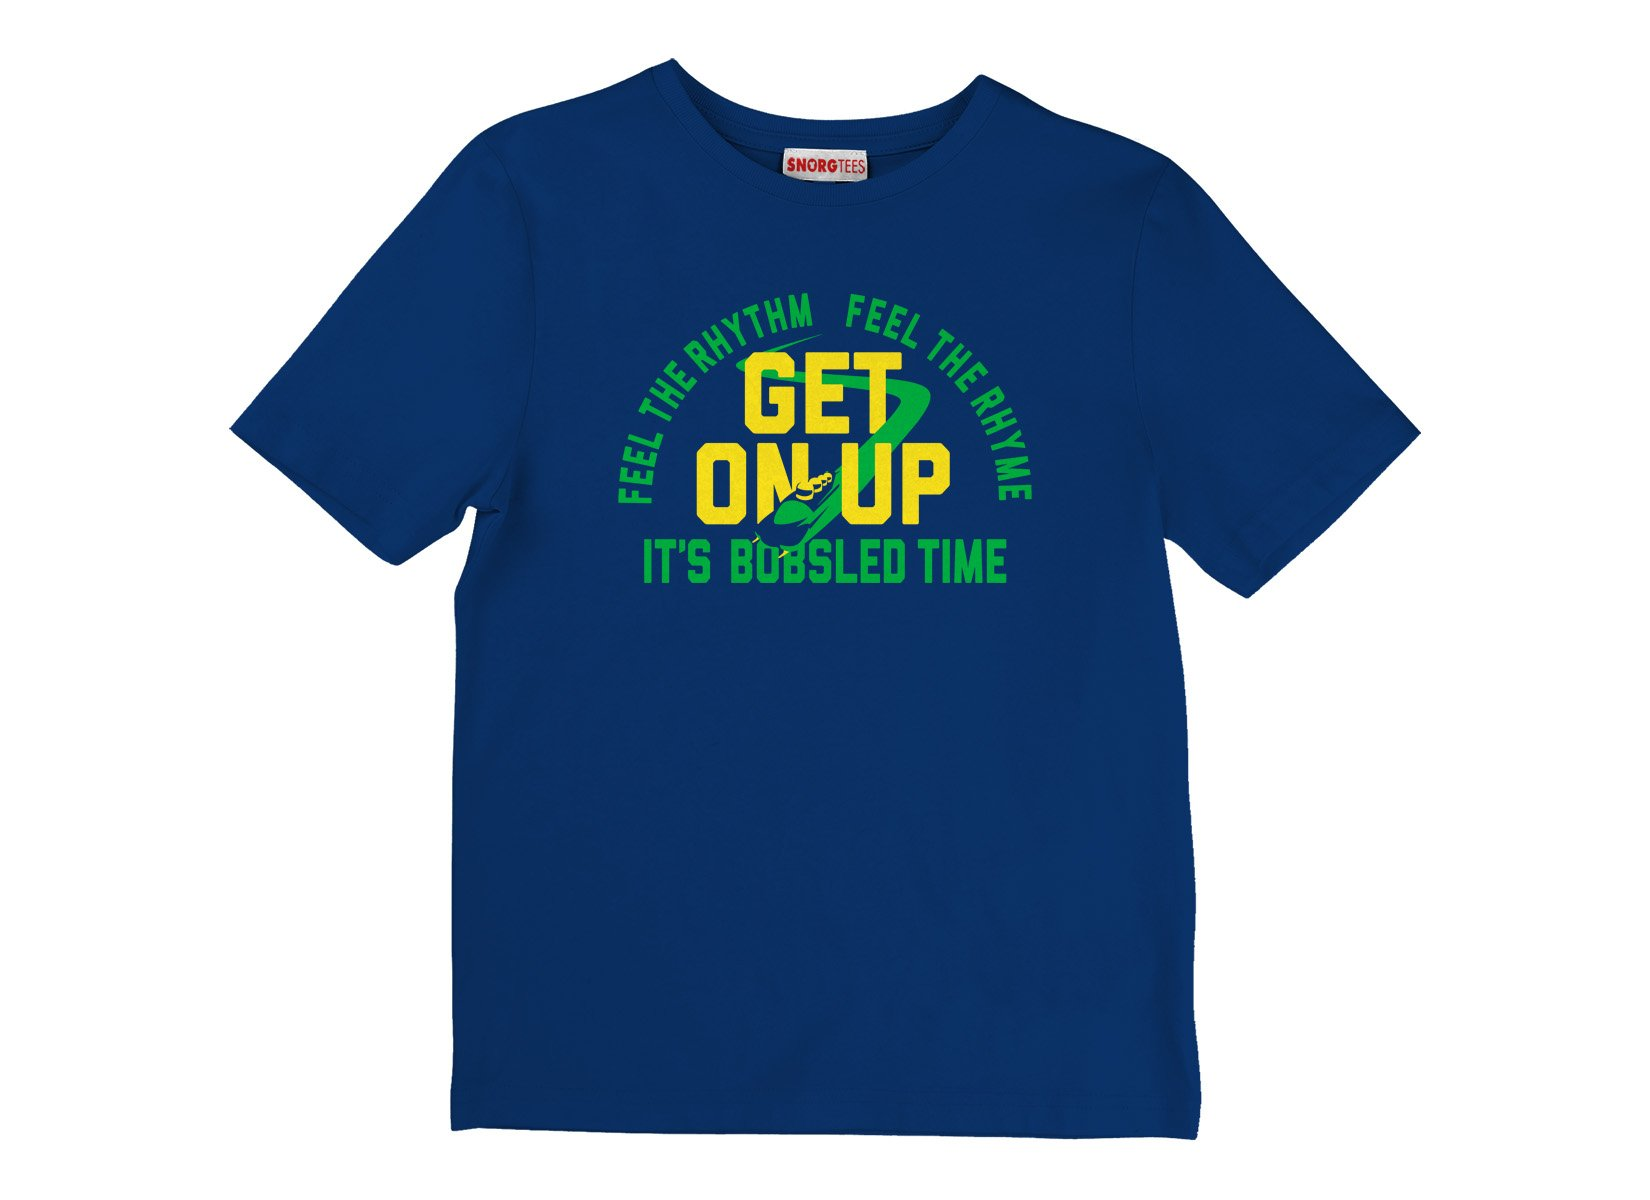 It's Bobsled Time on Kids T-Shirt